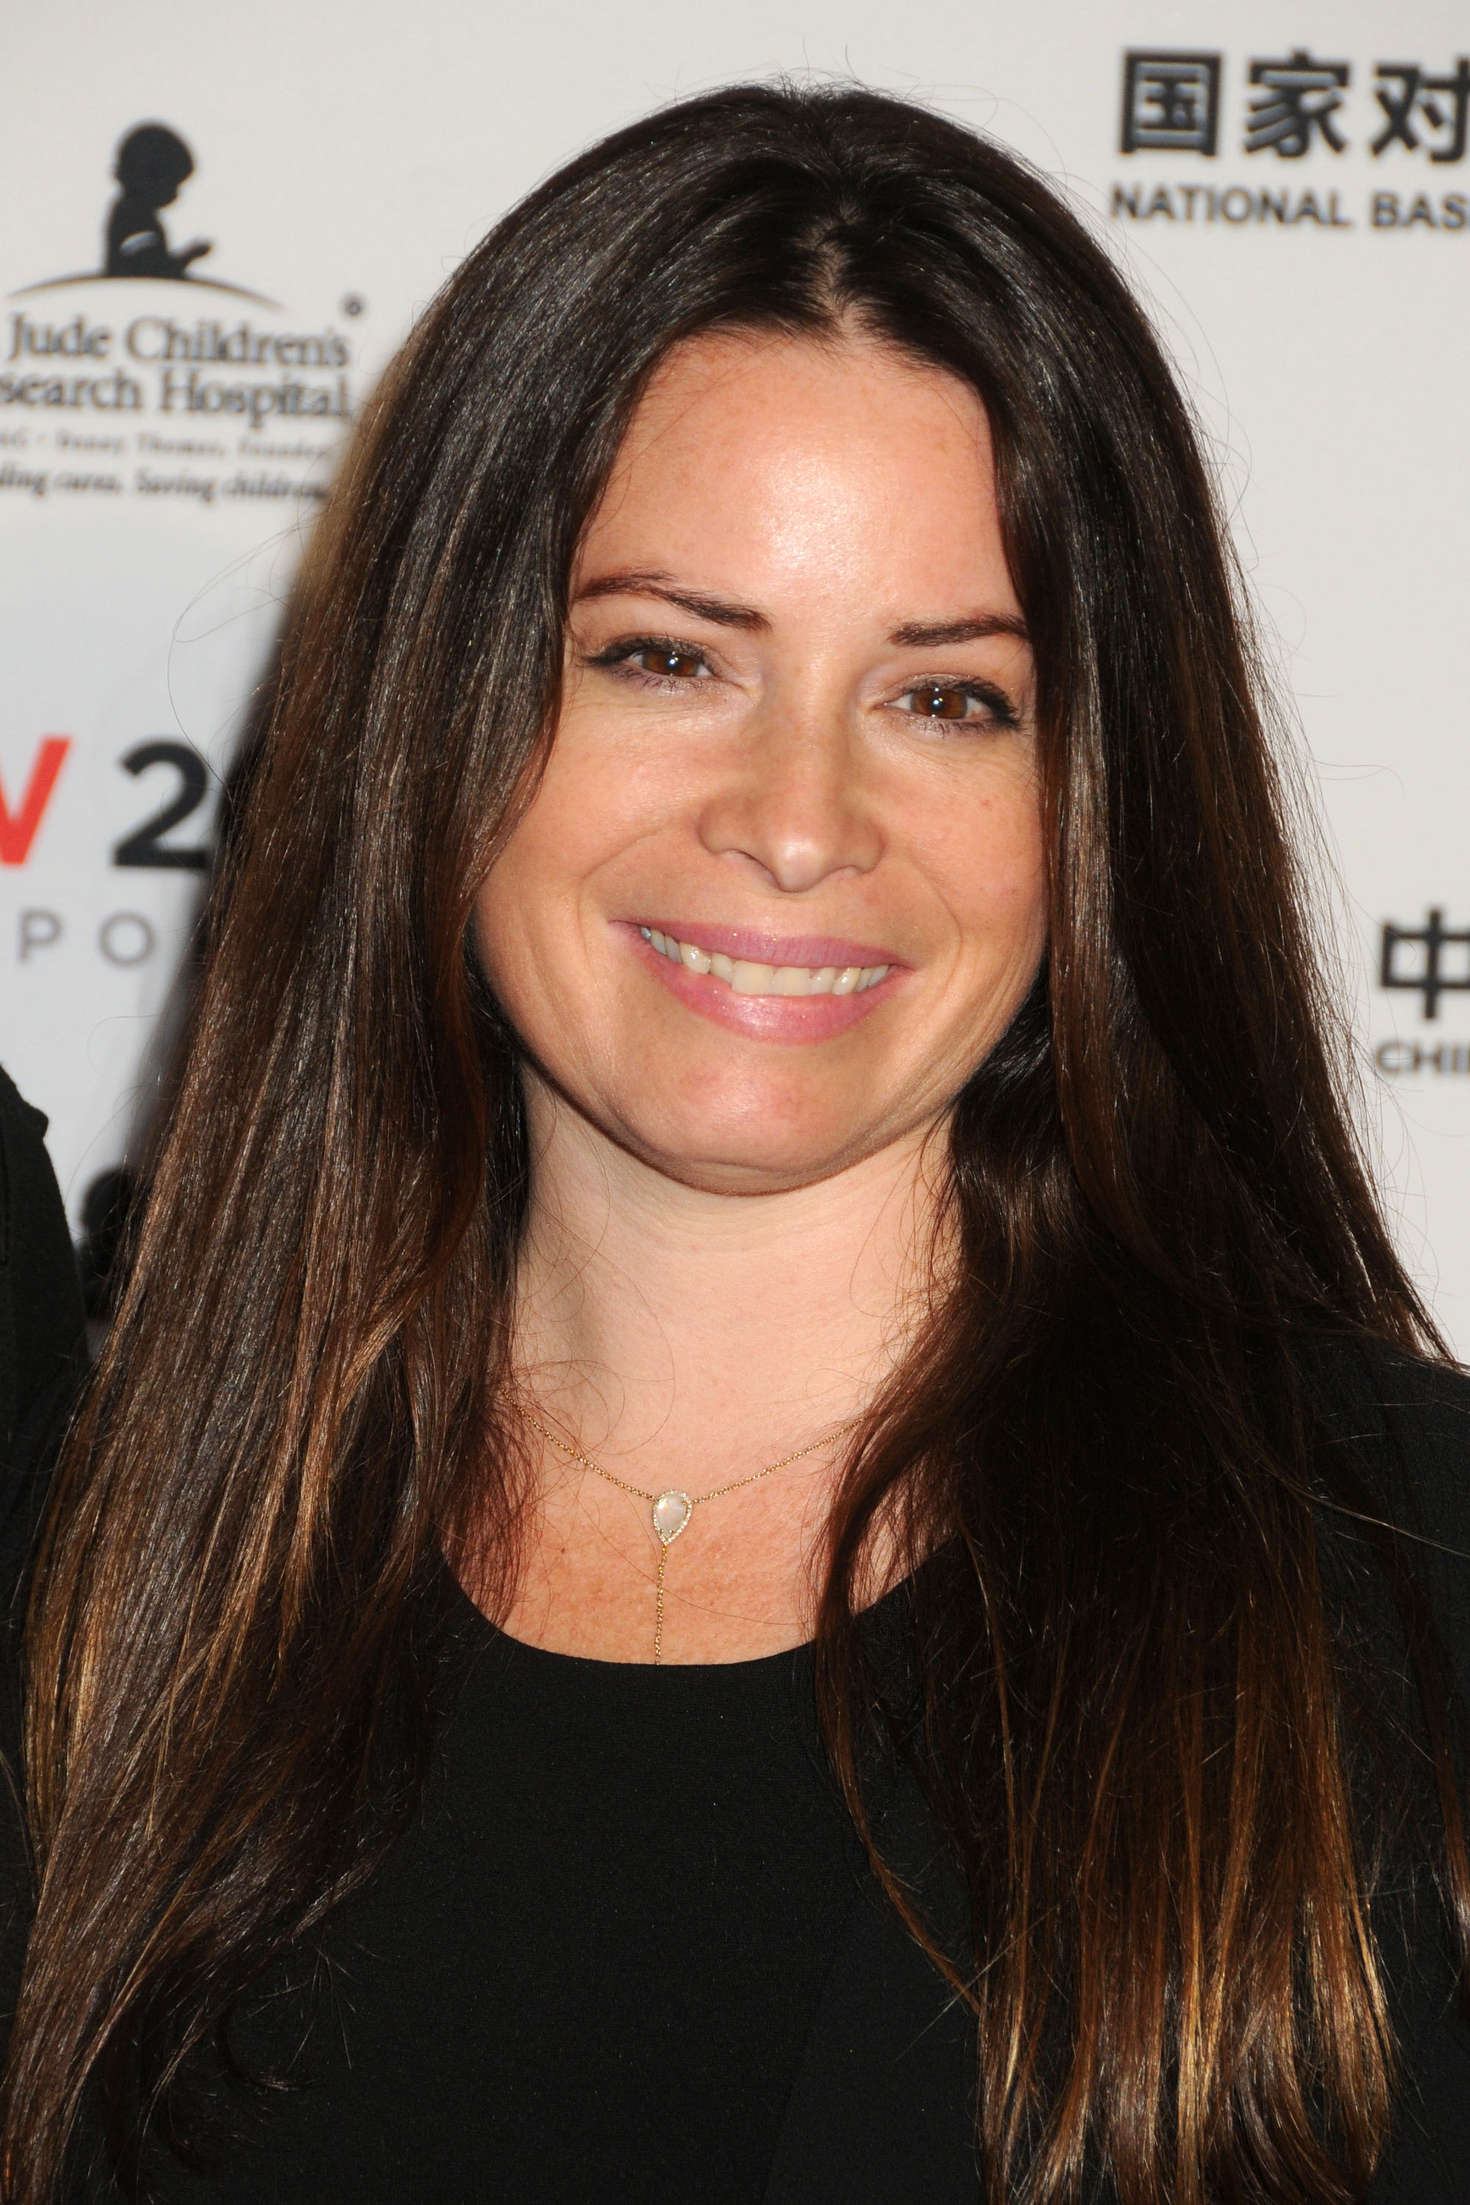 Holly Marie Combs The Los Angeles Art Show and The Los Angeles Fine Art Show in Los Angeles